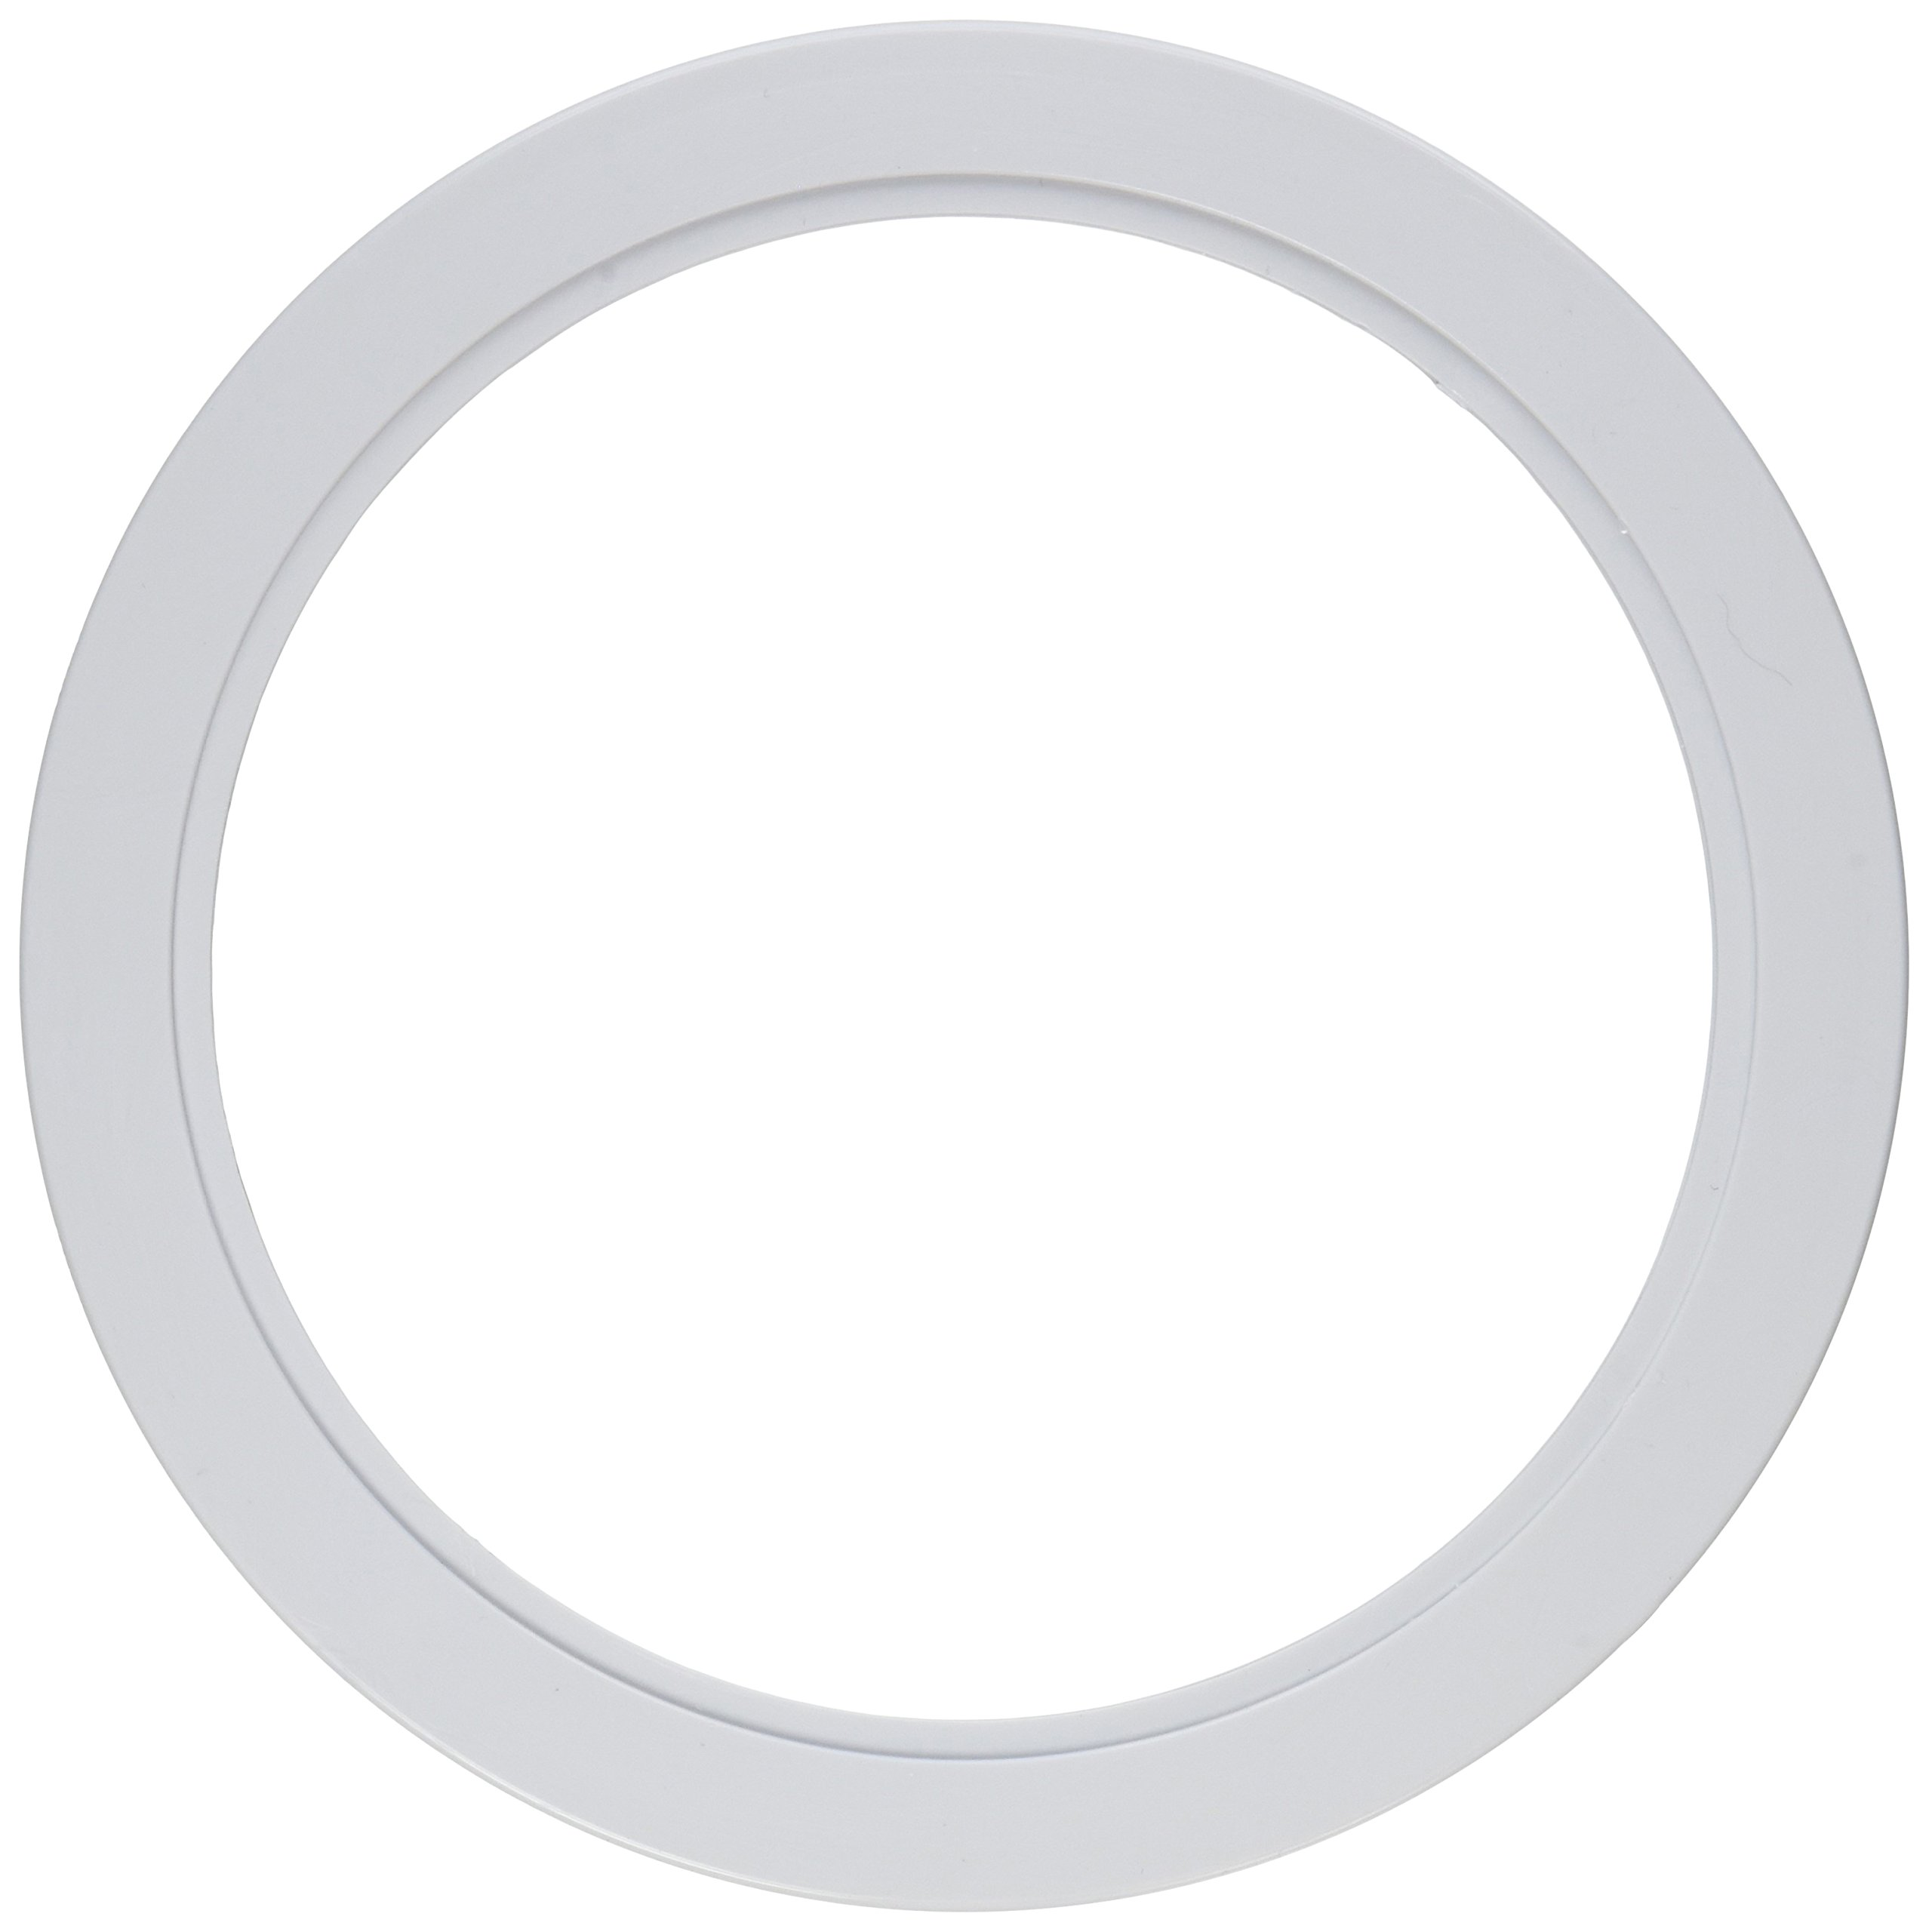 Hayward SPX1082D Basket Support Ring Replacement for Select Hayward Automatic Skimmers